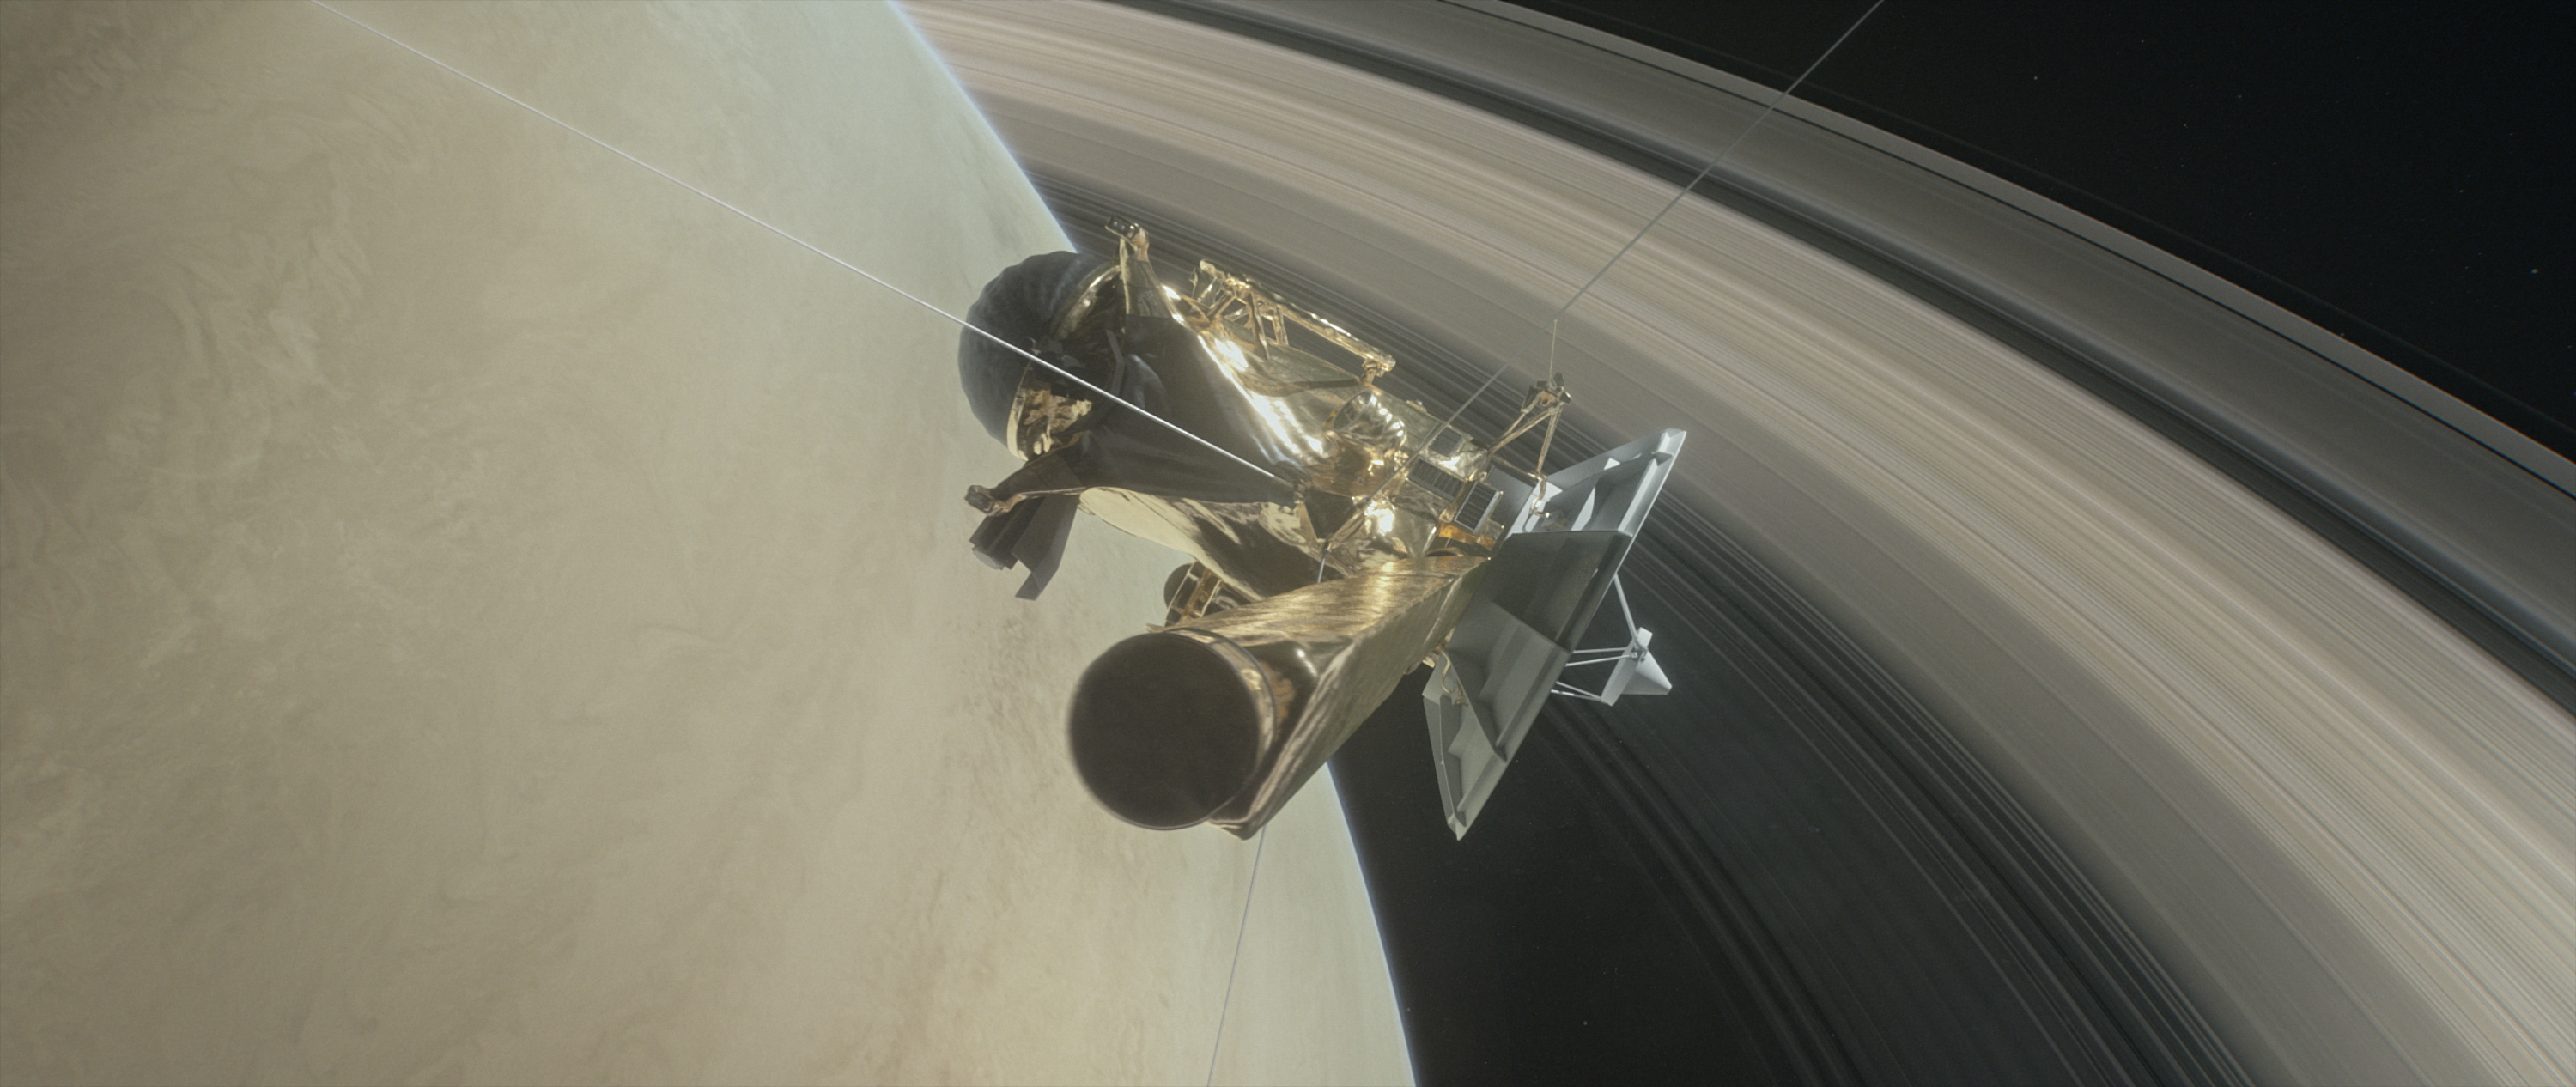 Illustration of Cassini diving between the rings of Saturn.